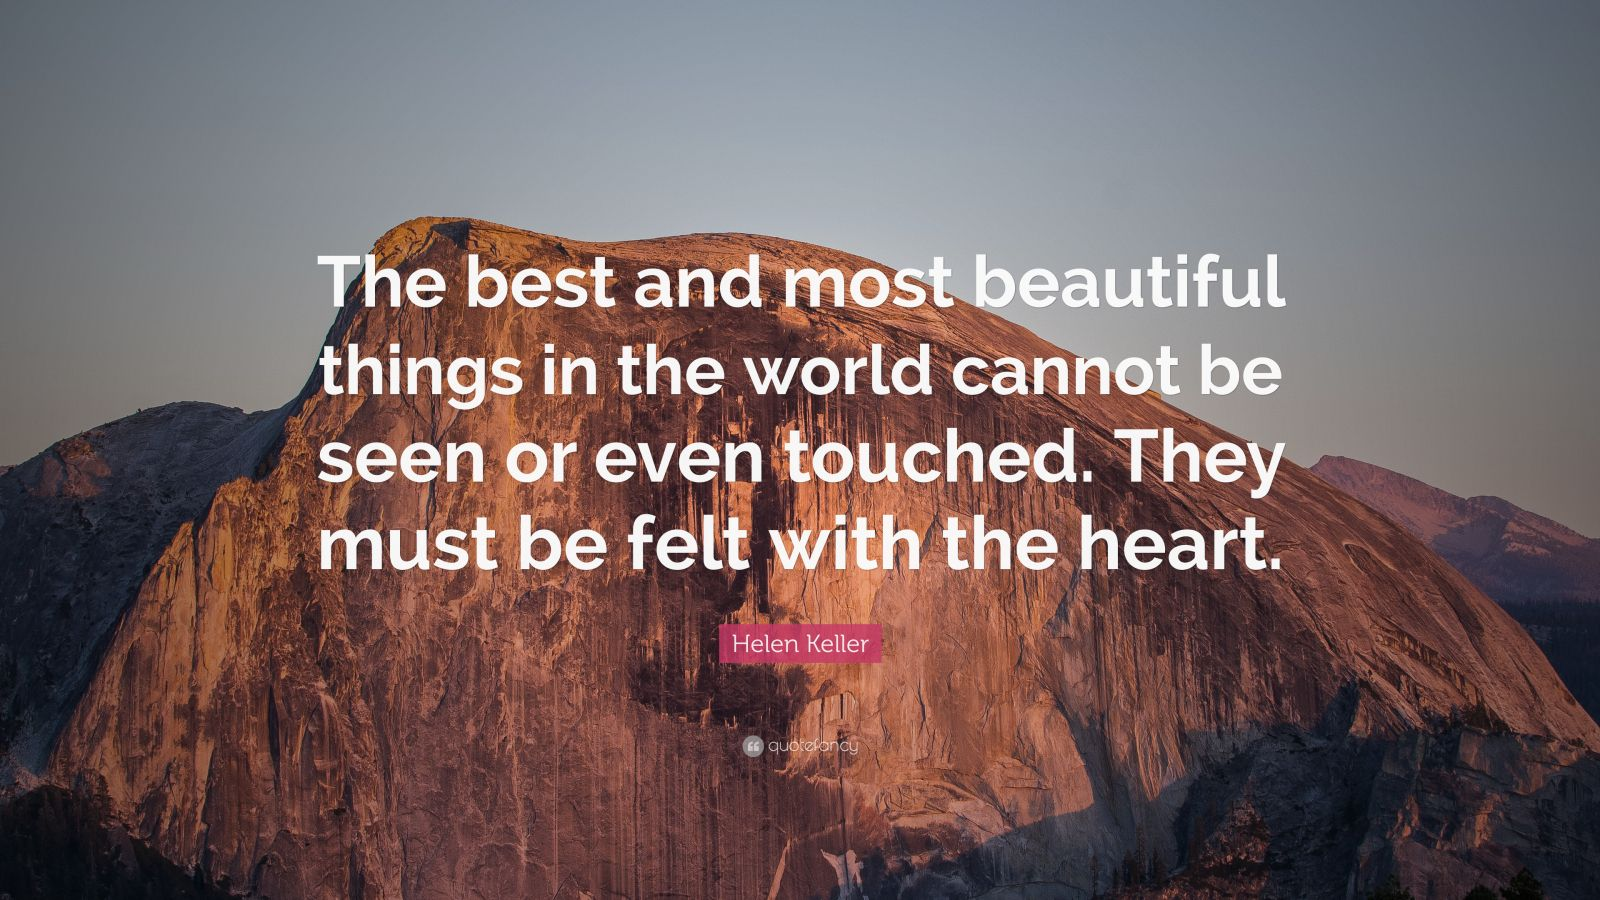 The Best And Most Beautiful Things In The World Cannot Be